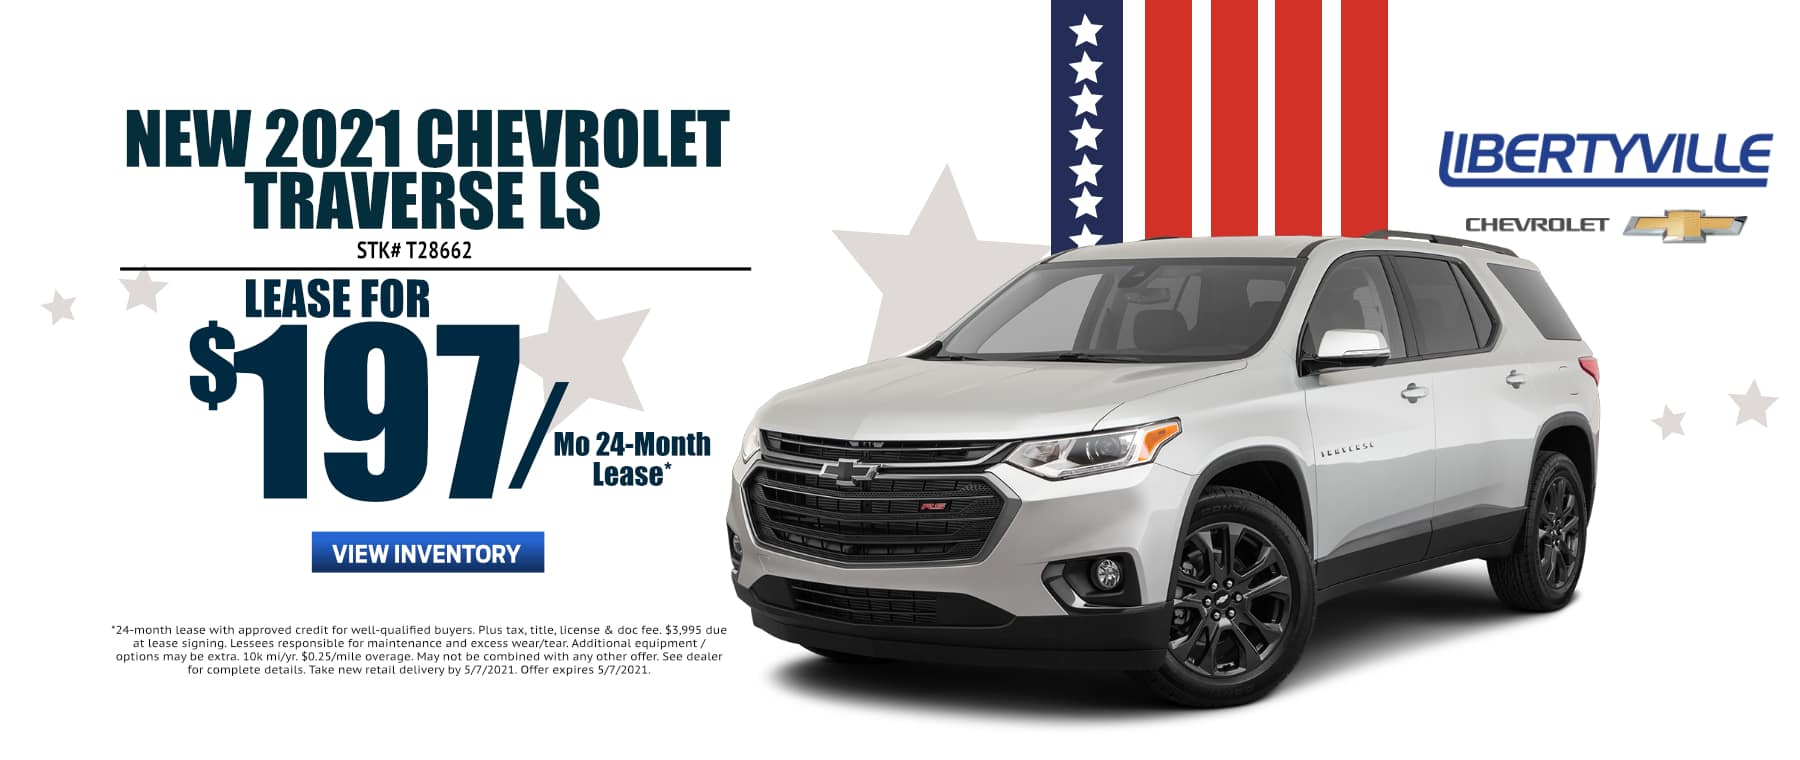 April_2021_Traverse_Lease_Libertyville_Chevrolet_